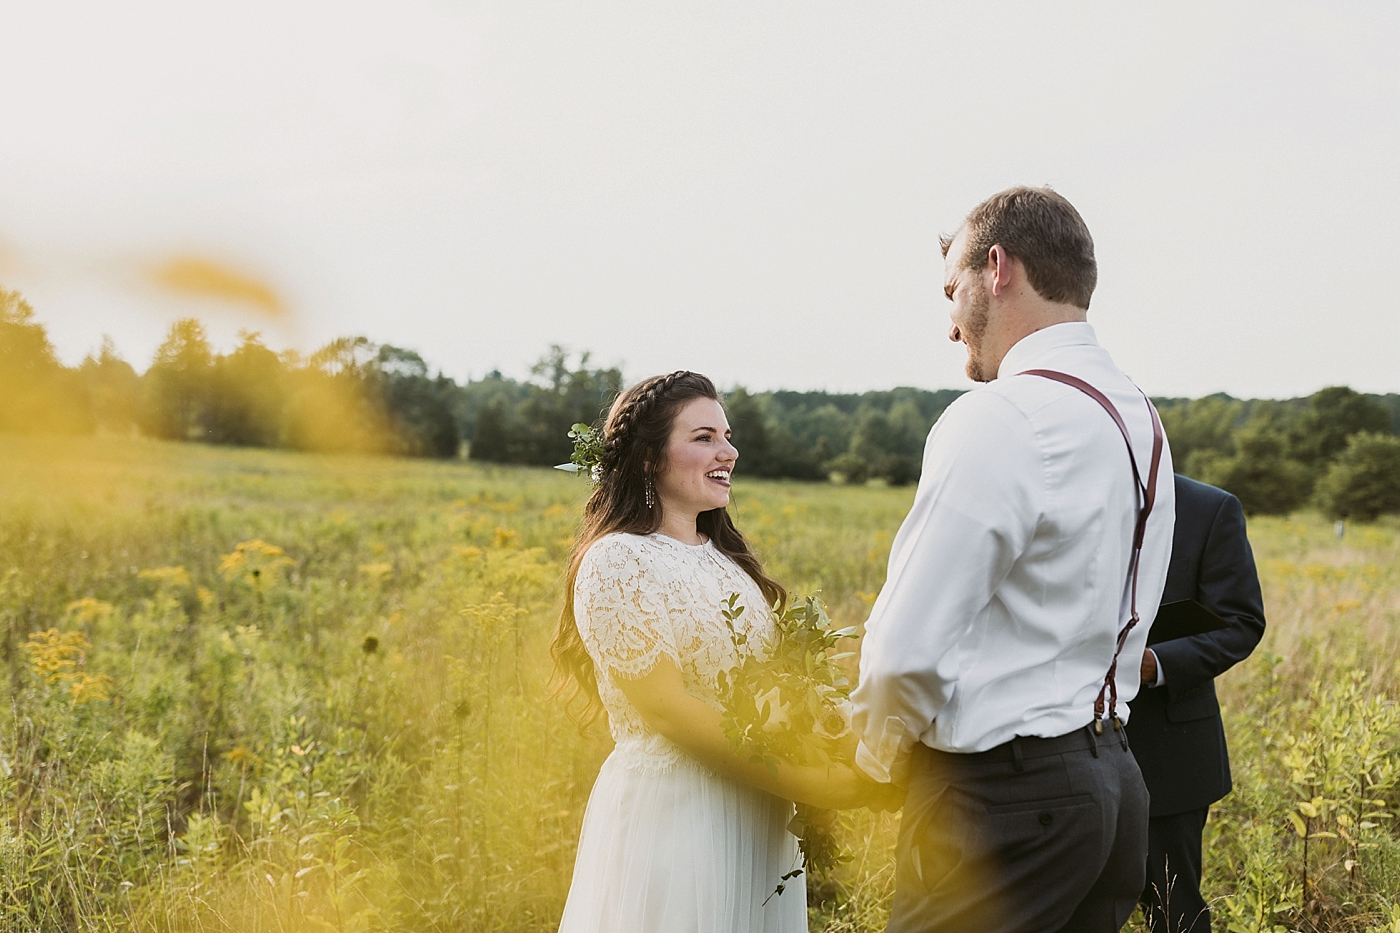 Meadow-Elopement-Ashley+Ben_MJPHOTO2018-99.jpg